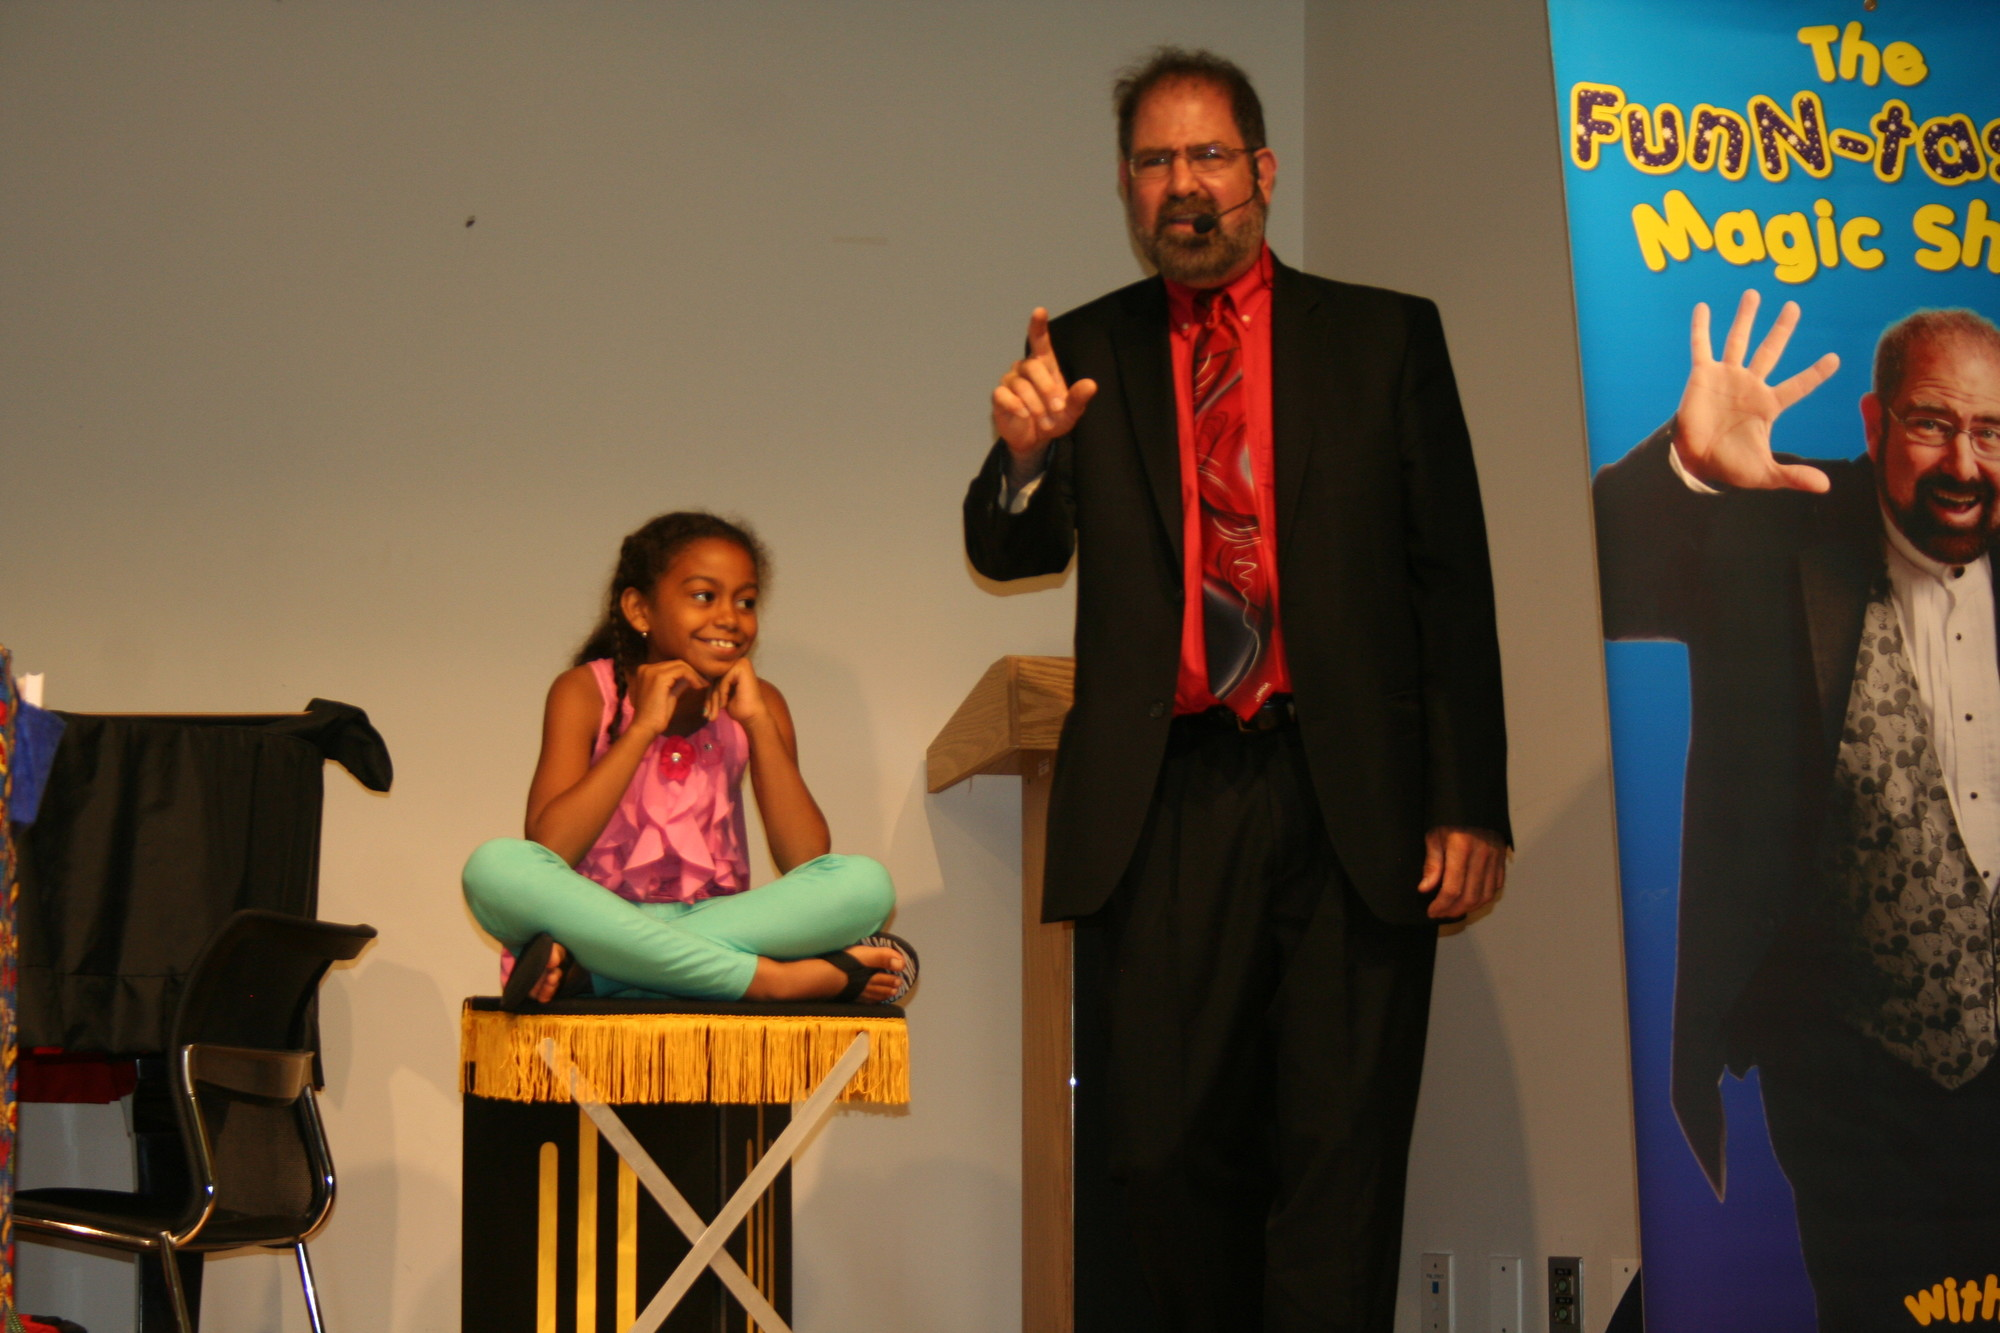 Natalie Rosario learned to levitate with magician David Lawrence.